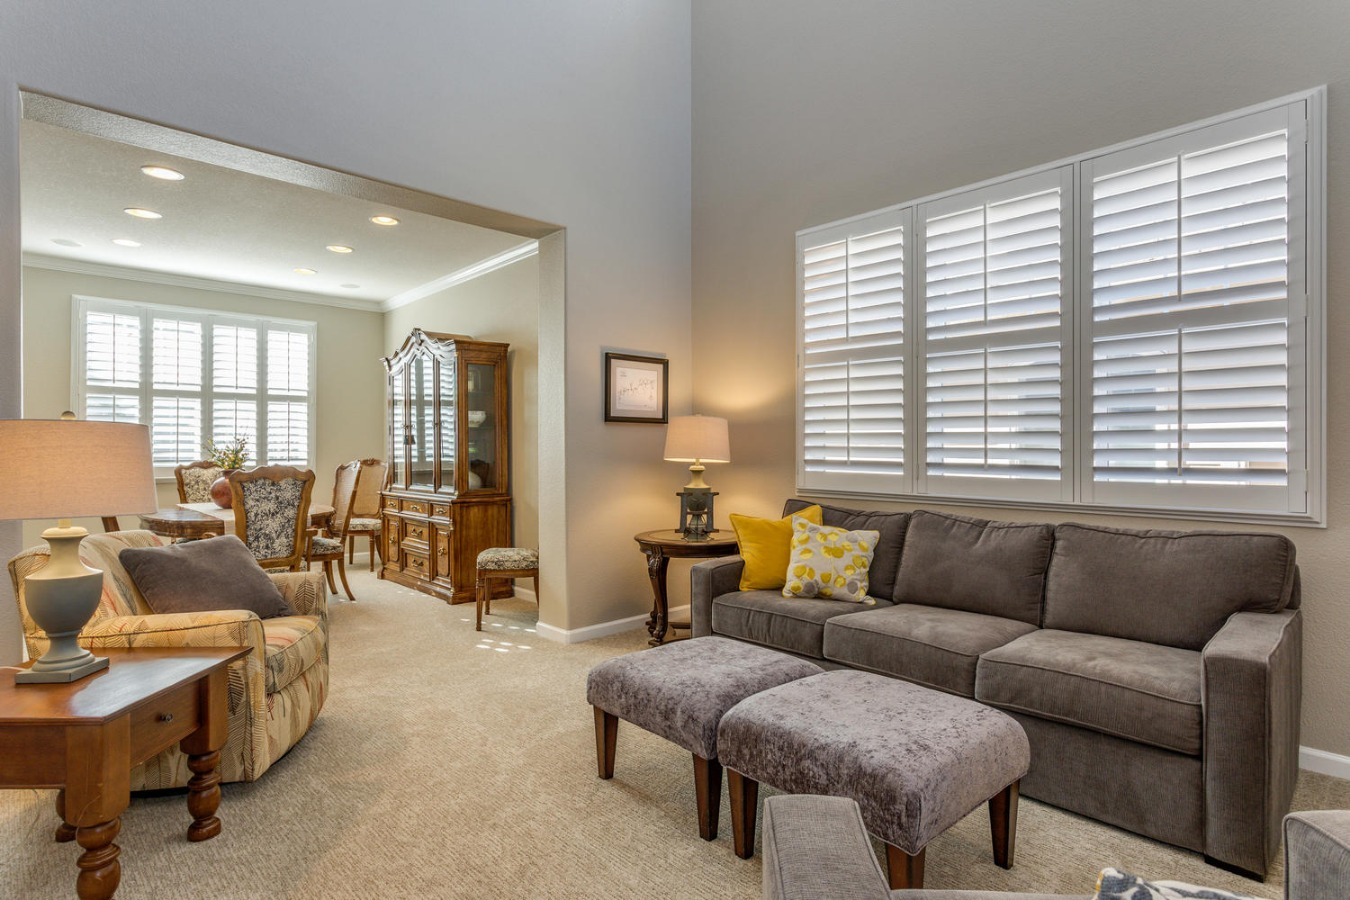 Bright, Open Living Room with Plantation Shutters